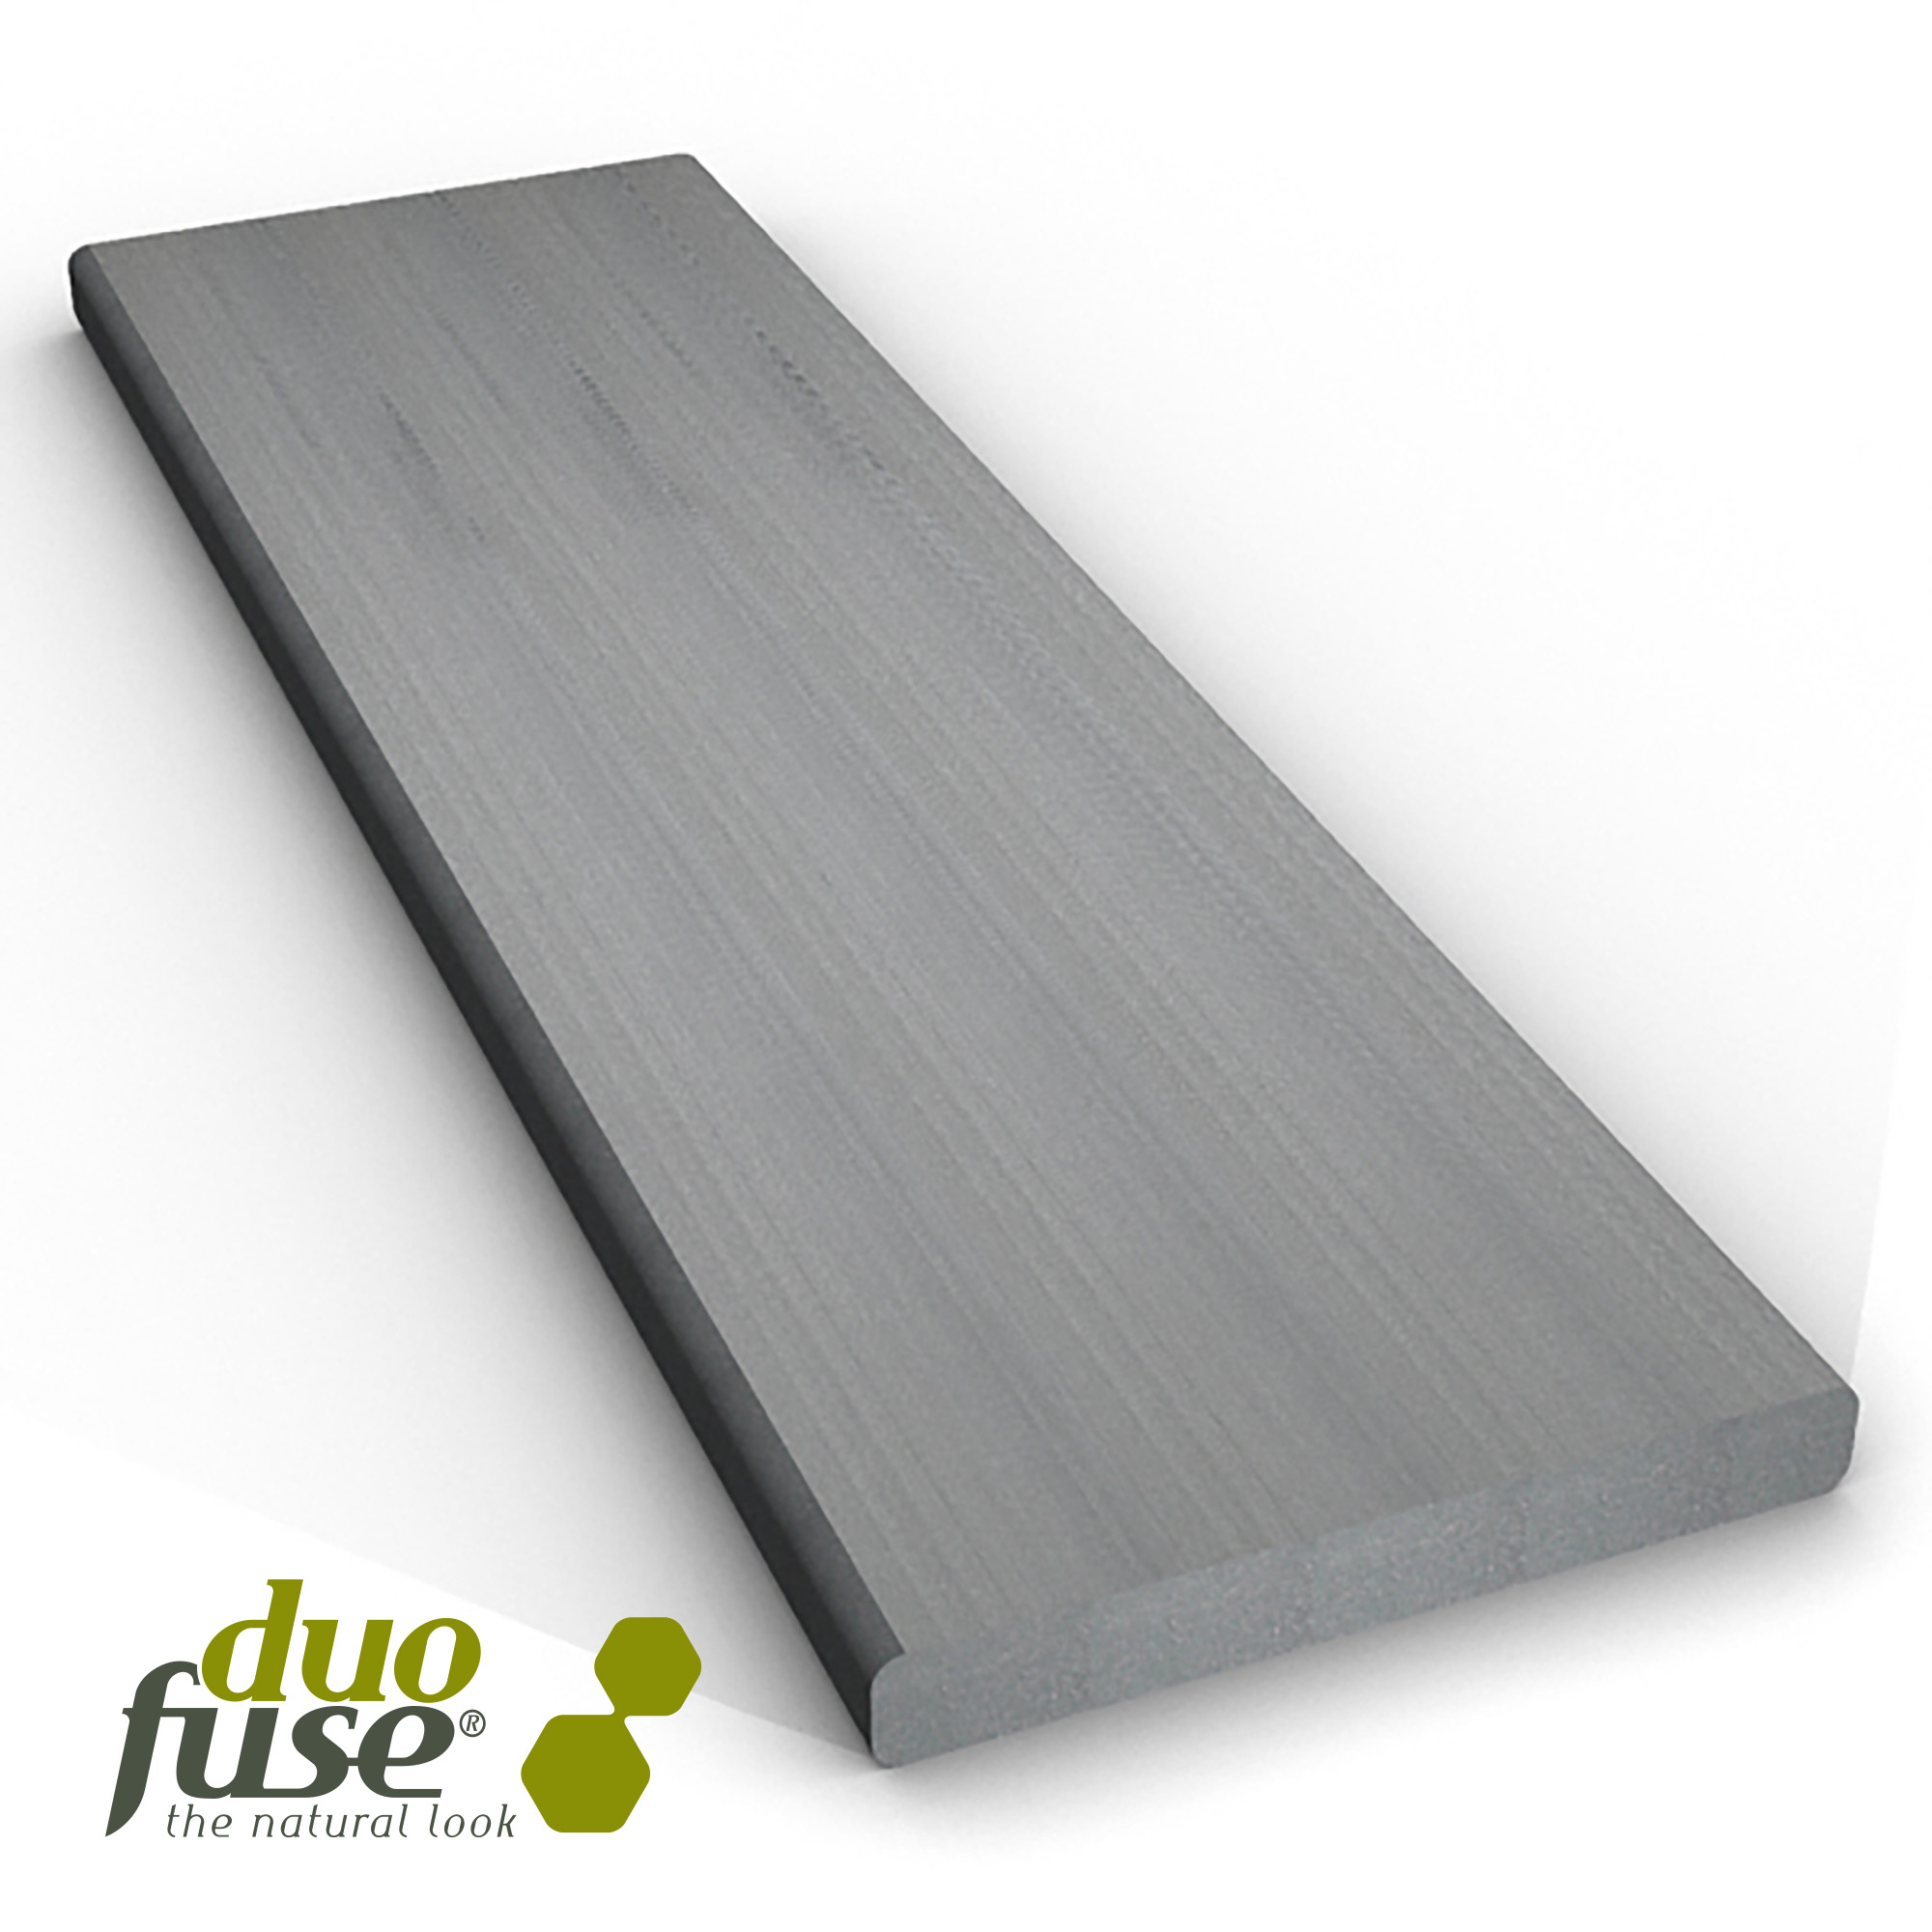 Duofuse | Plint | 400cm | Tropical Brown